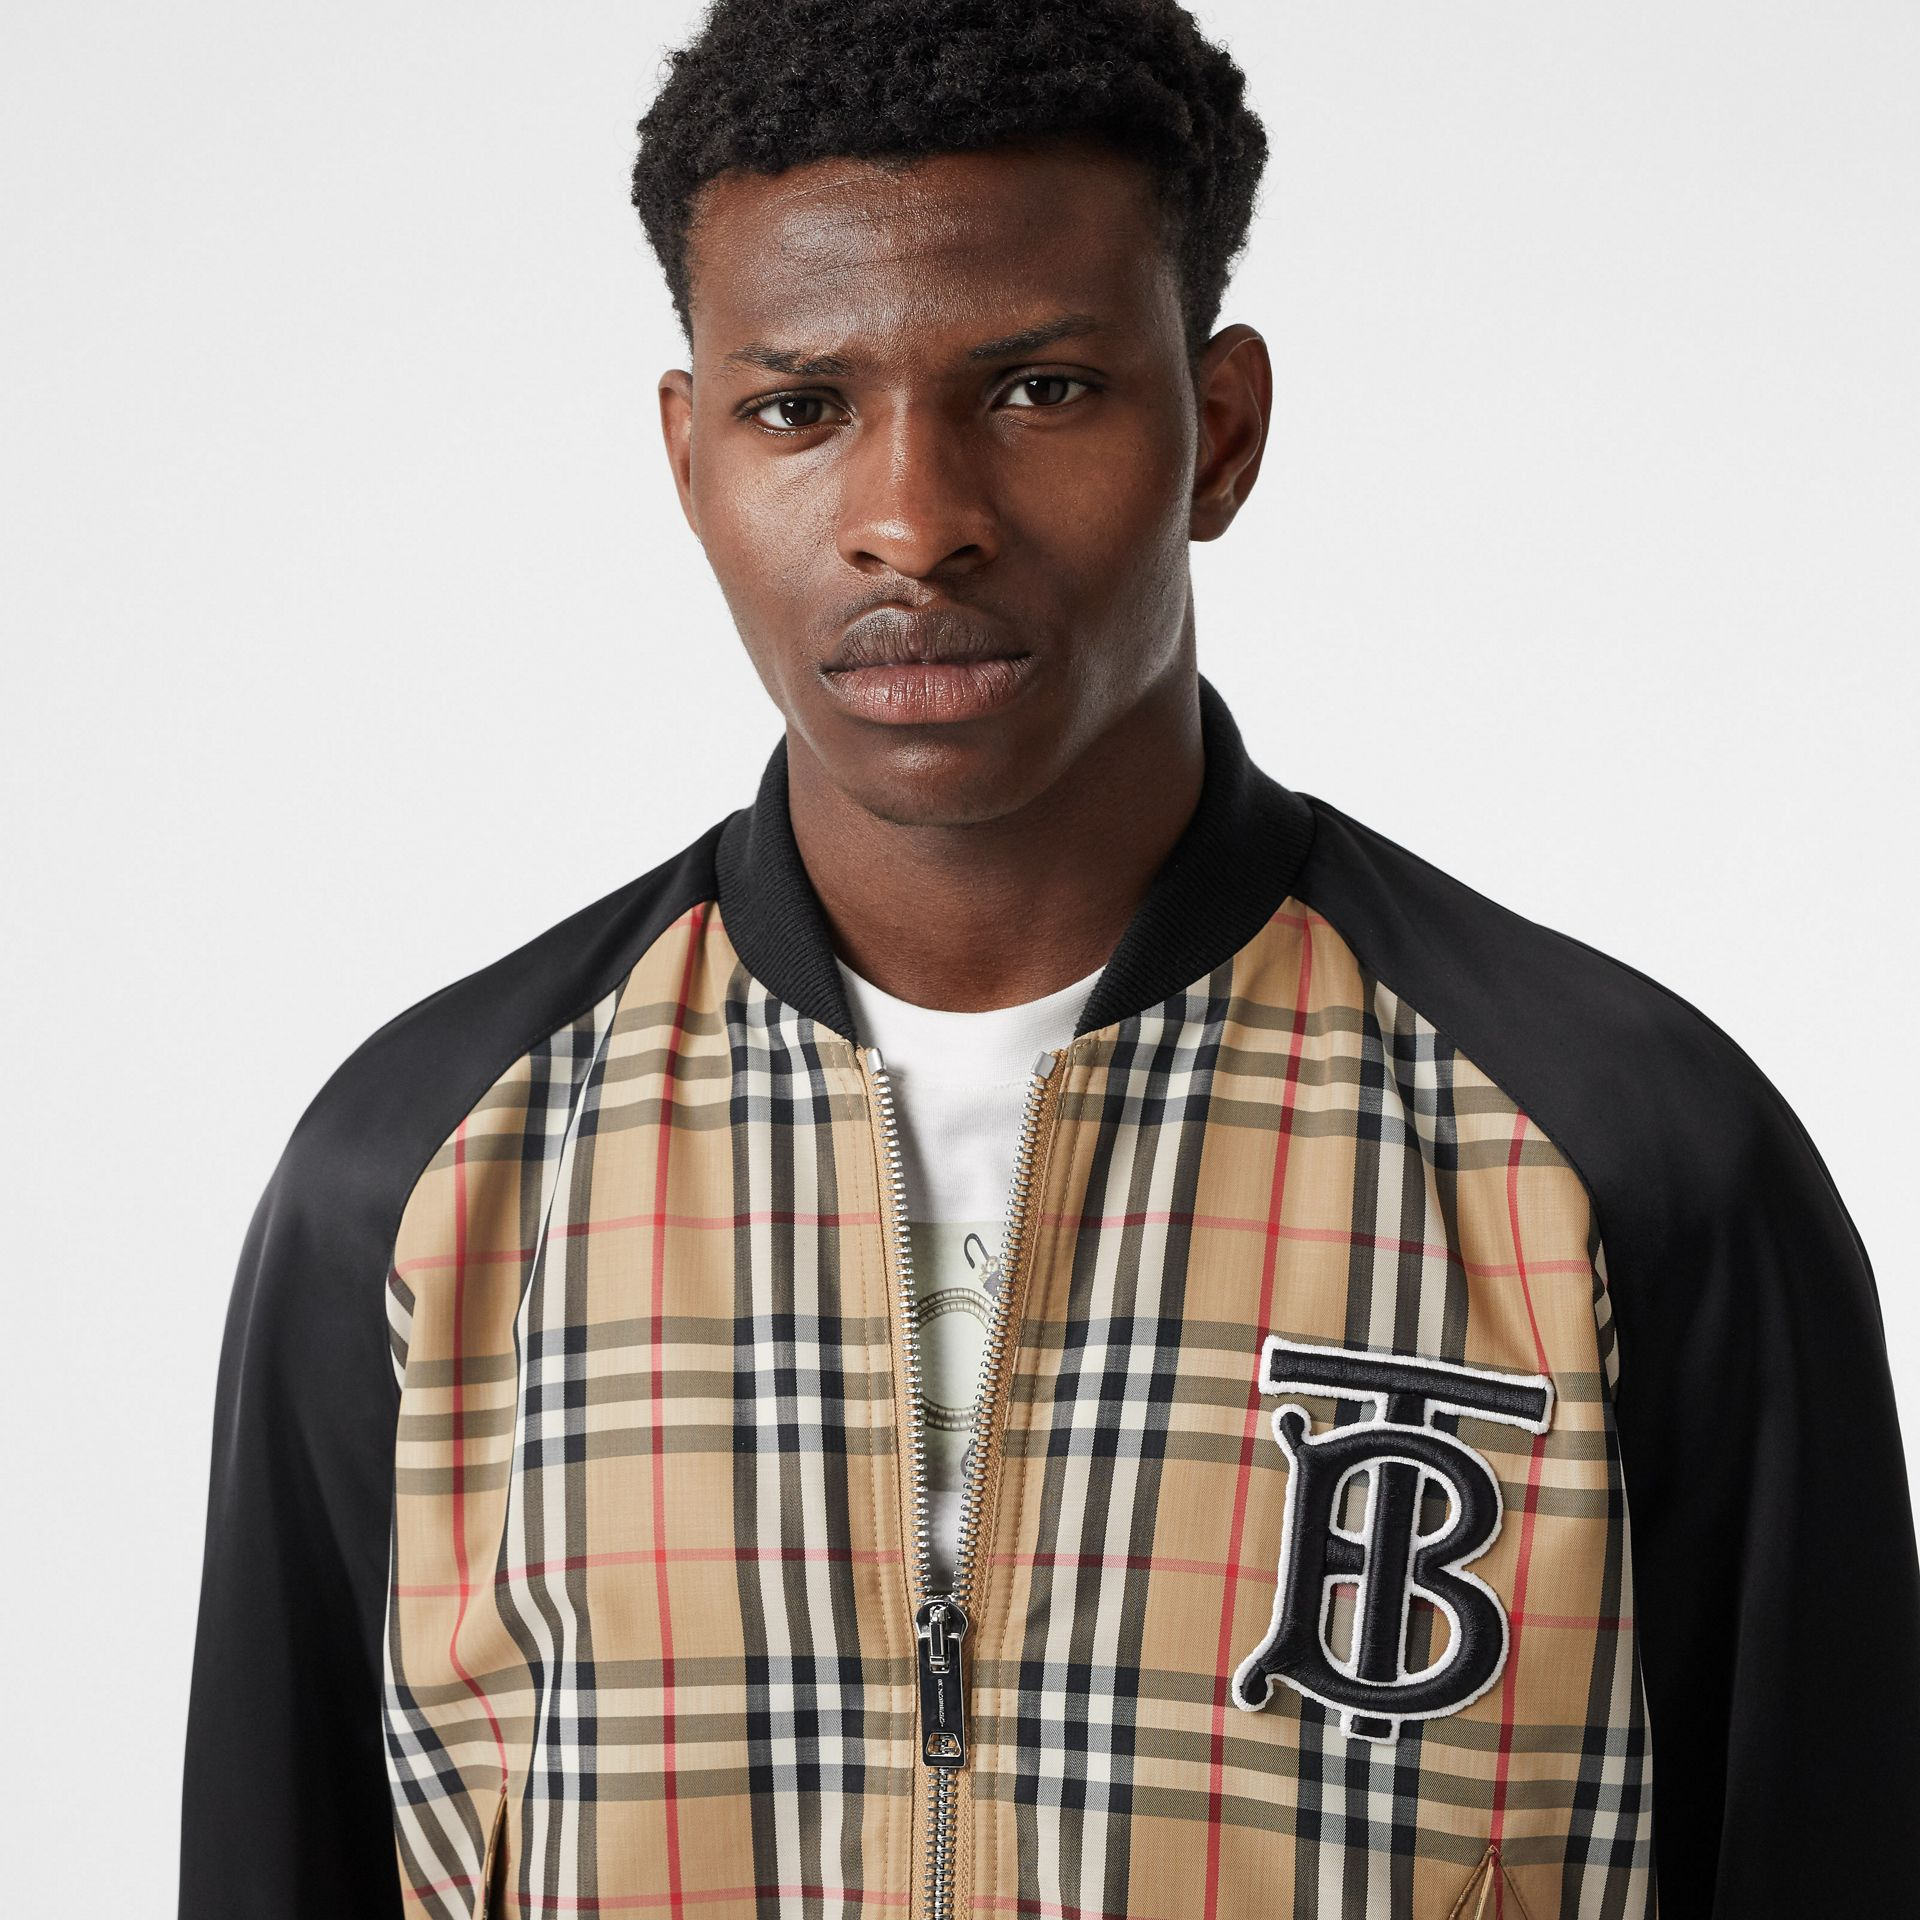 Monogram Motif Vintage Check Nylon Bomber Jacket in Archive Beige - Men | Burberry - gallery image 1